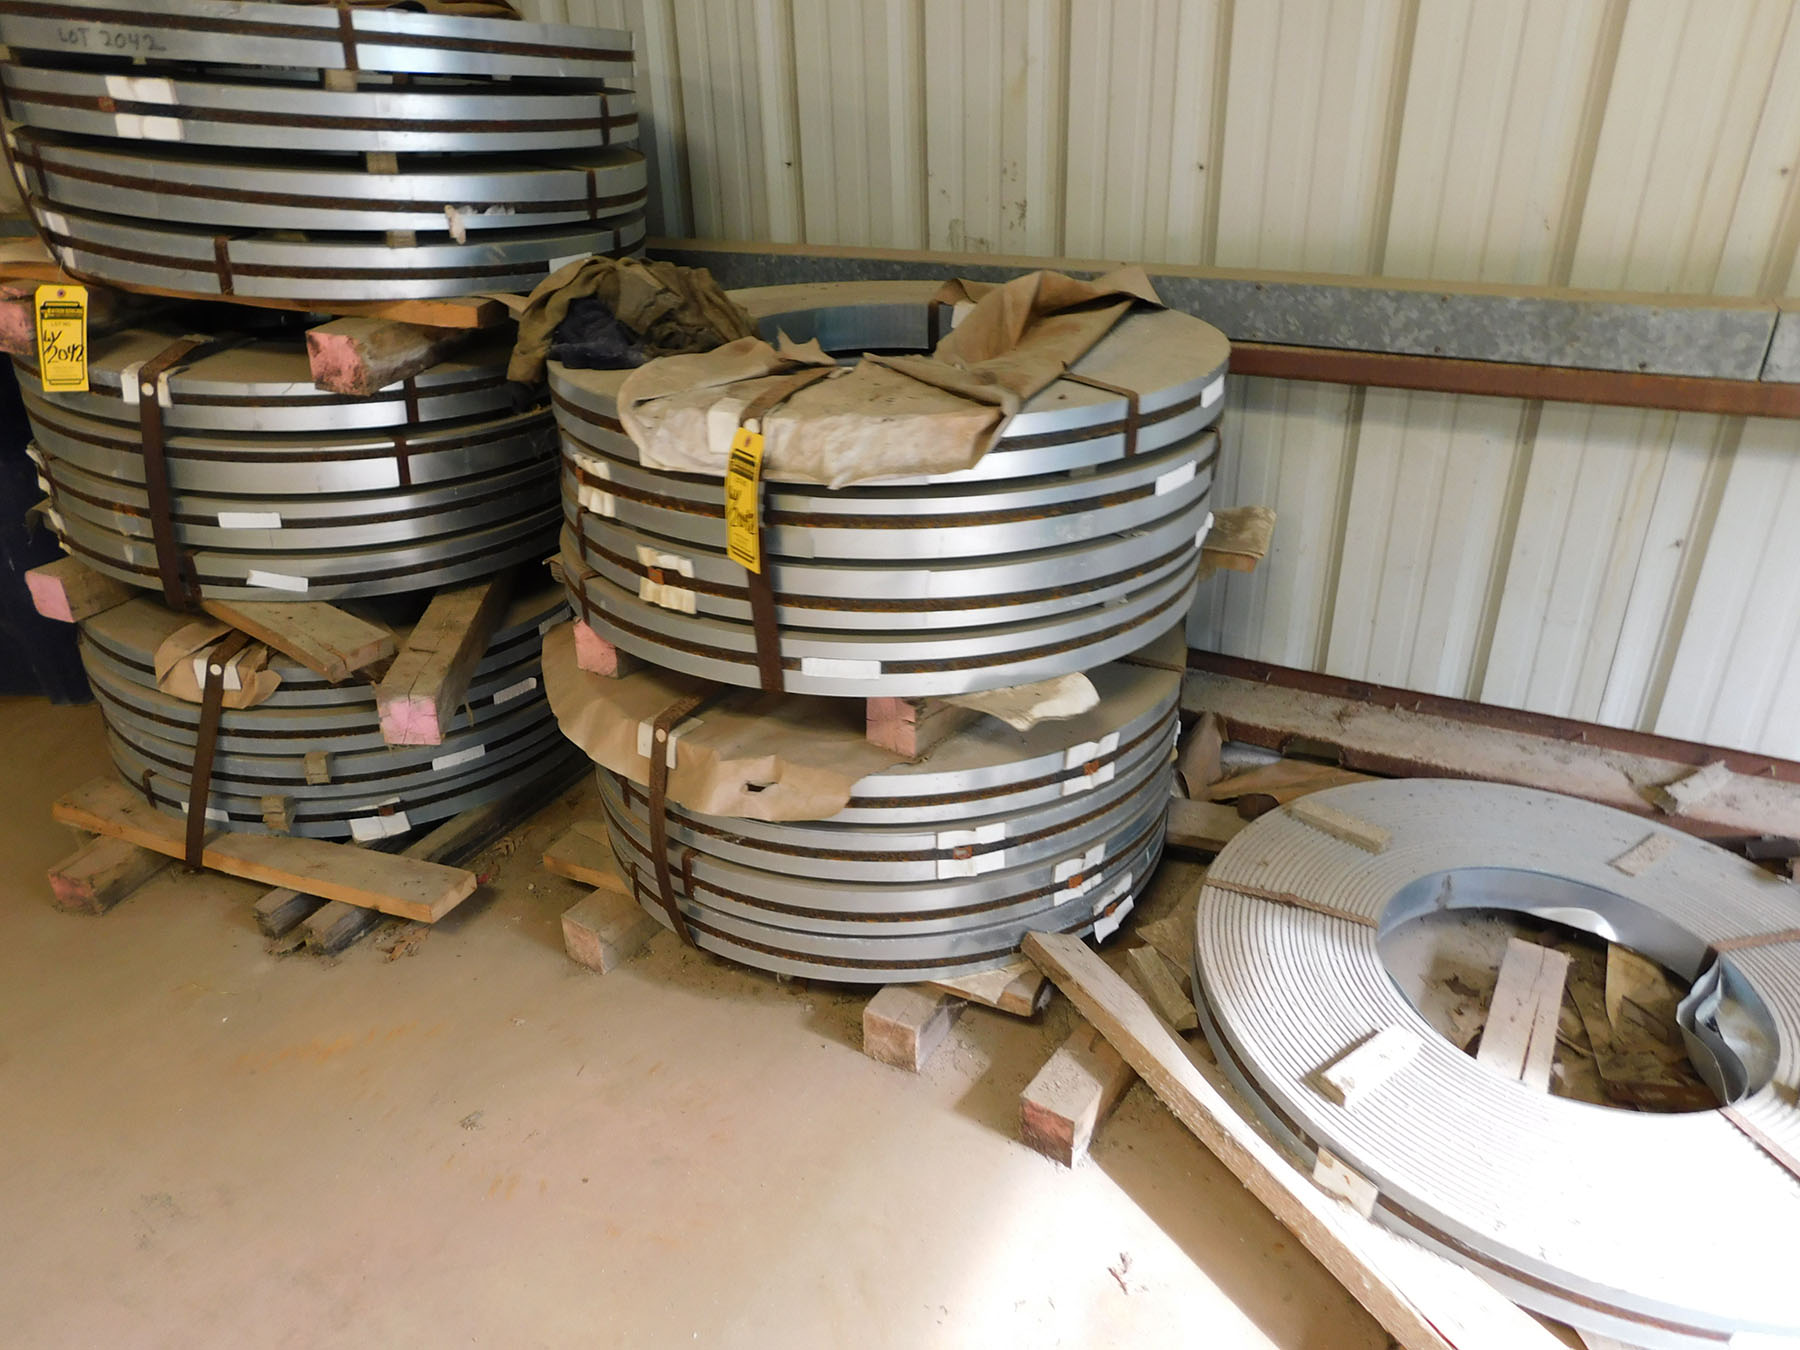 Lot 2042 - (24) ROLLS OF GALVANIZED STEEL PIPING MATERIAL